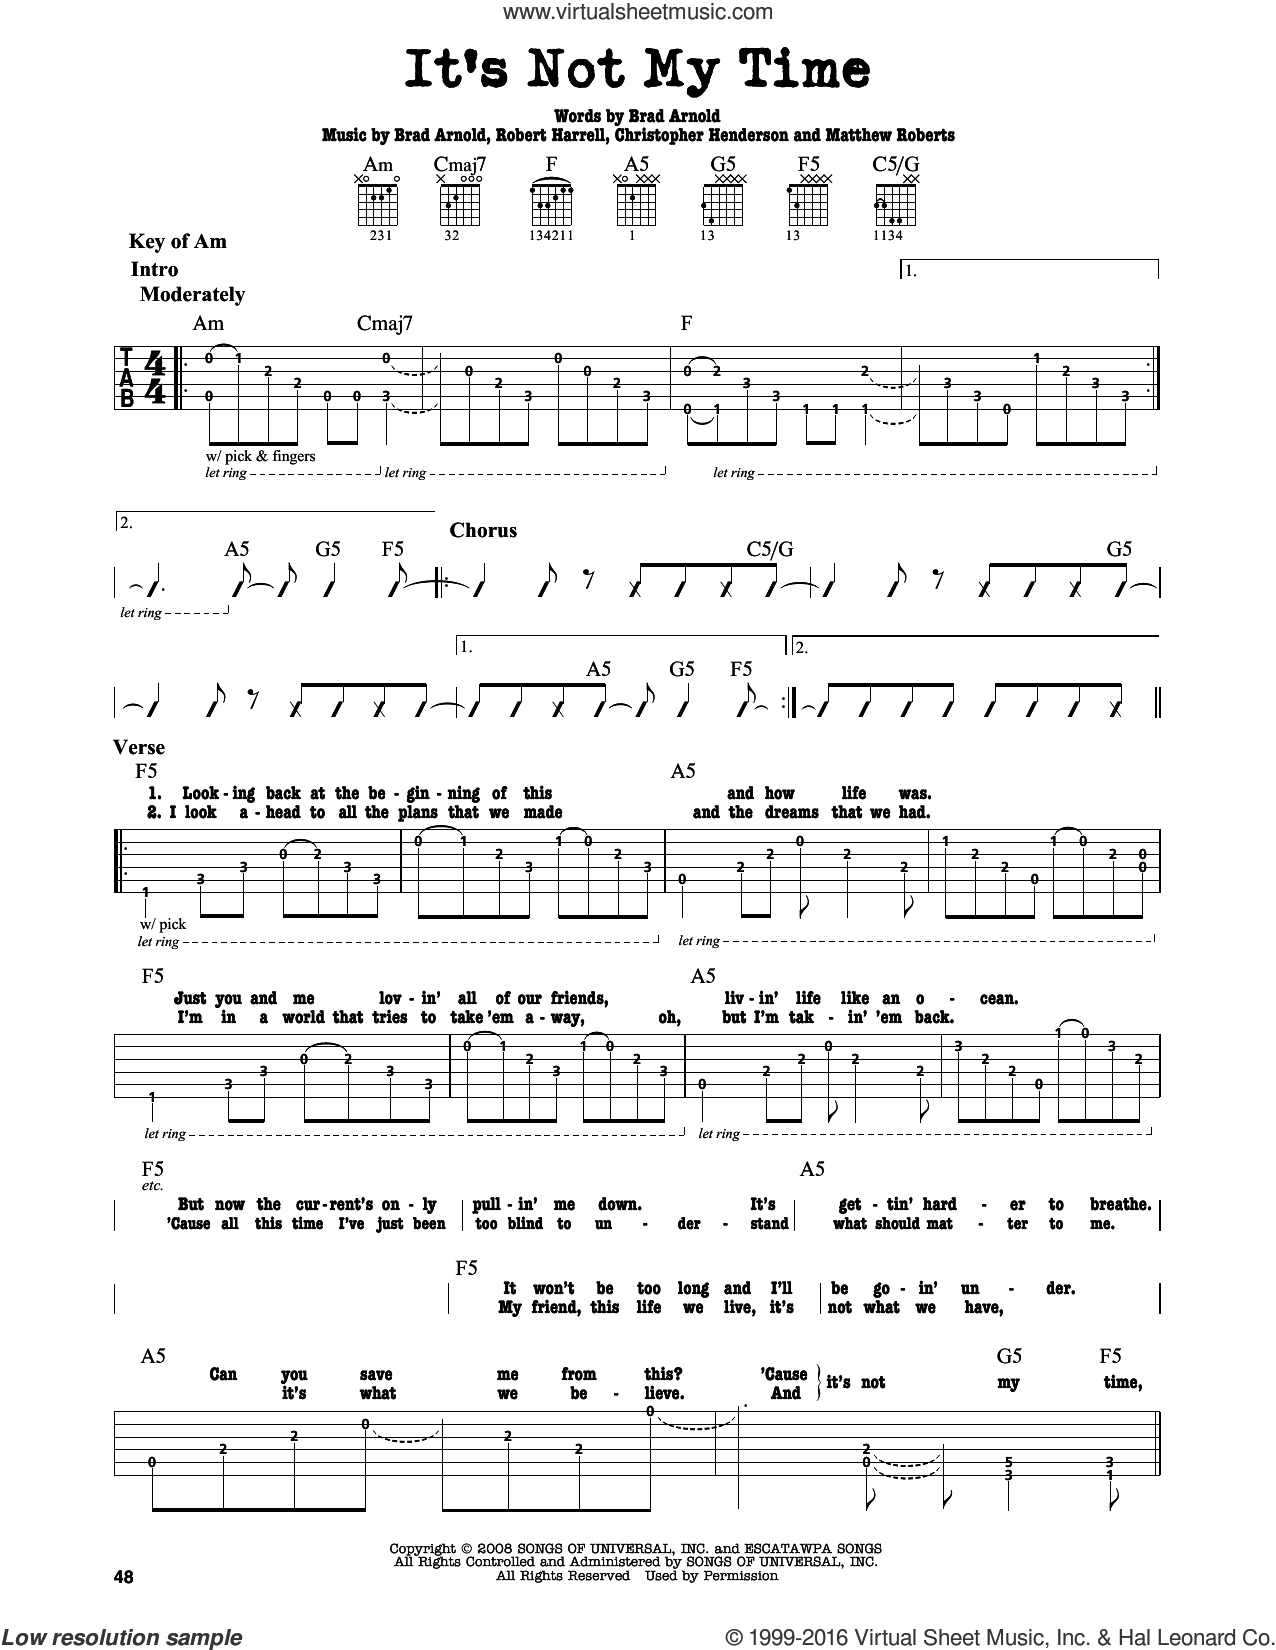 It's Not My Time sheet music for guitar solo (lead sheet) by Robert Harrell